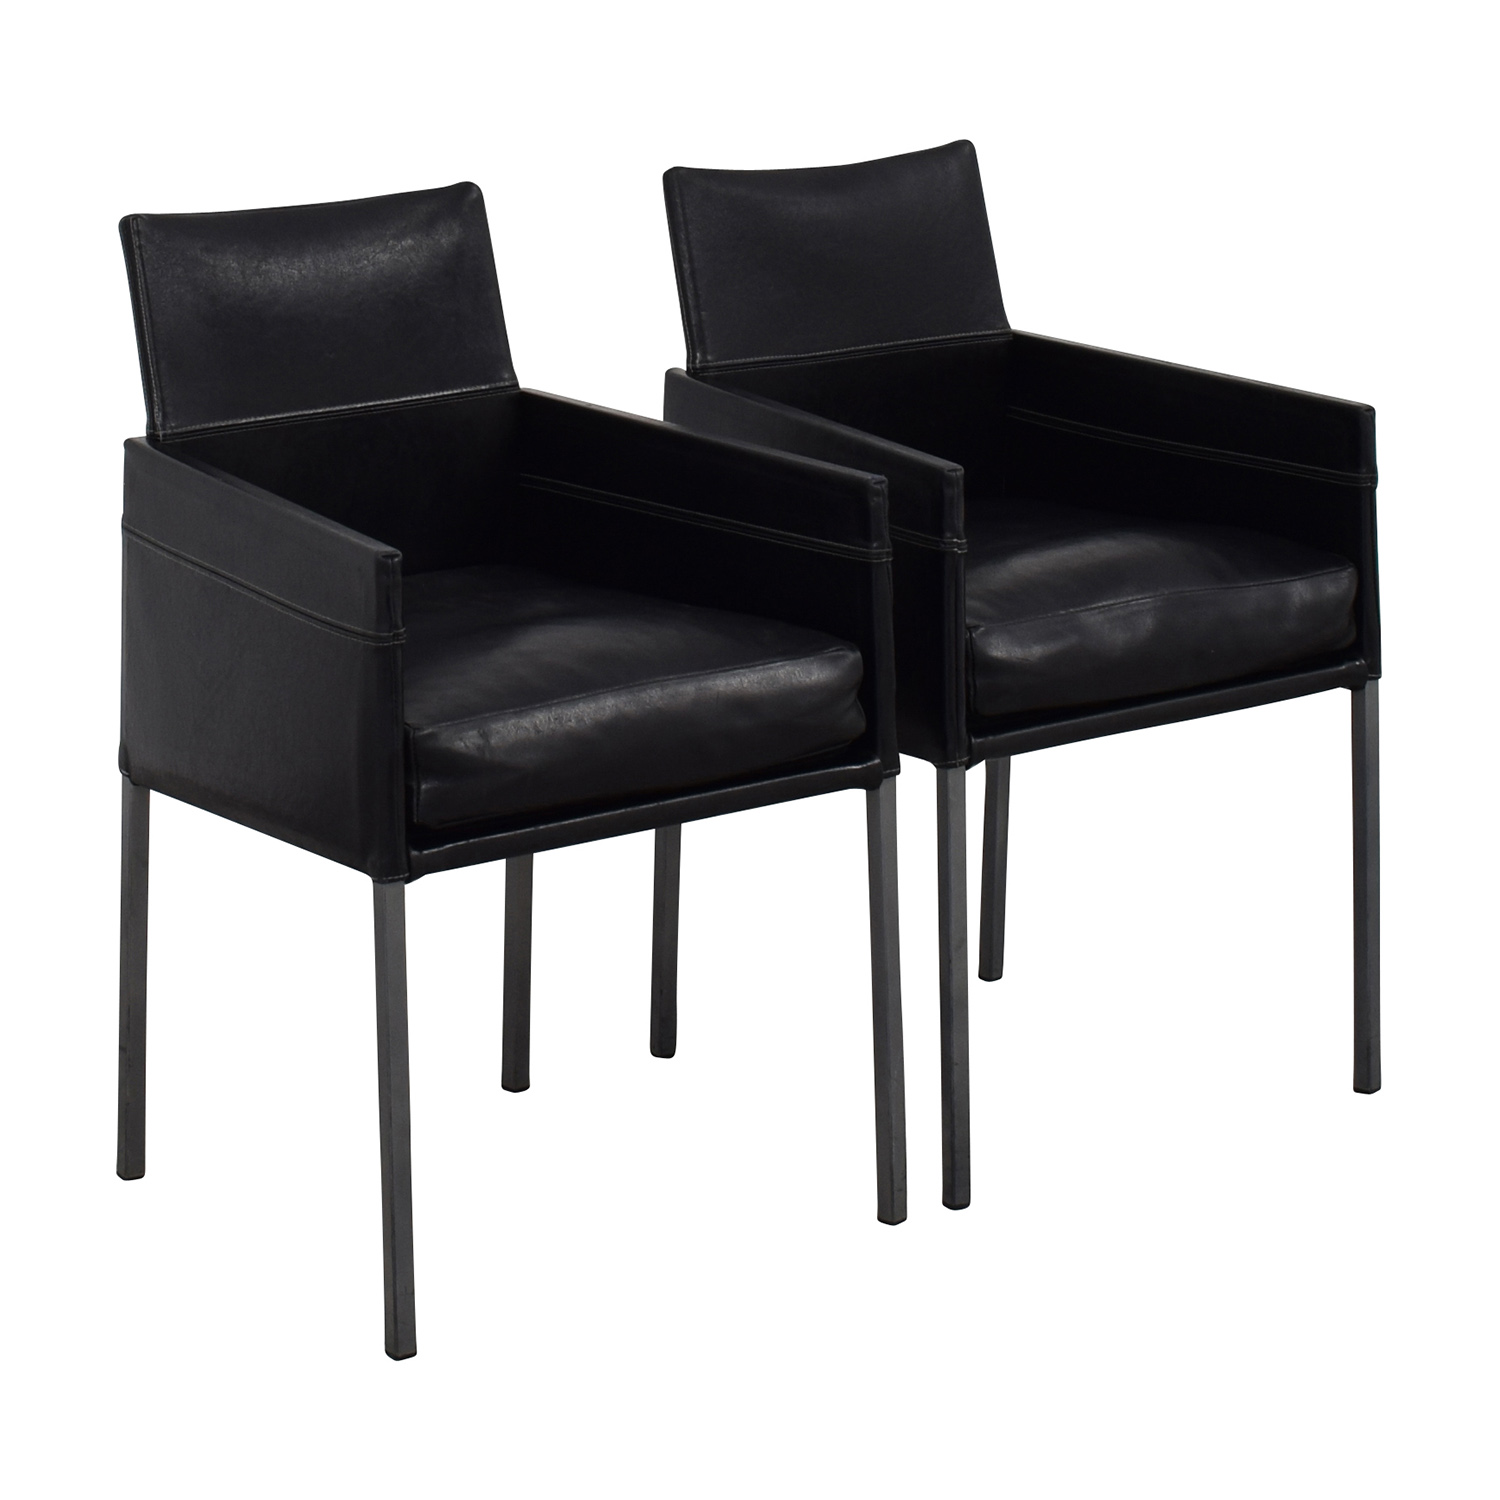 buy Design Within Reach Black Leather Chairs Design Within Reach Accent Chairs